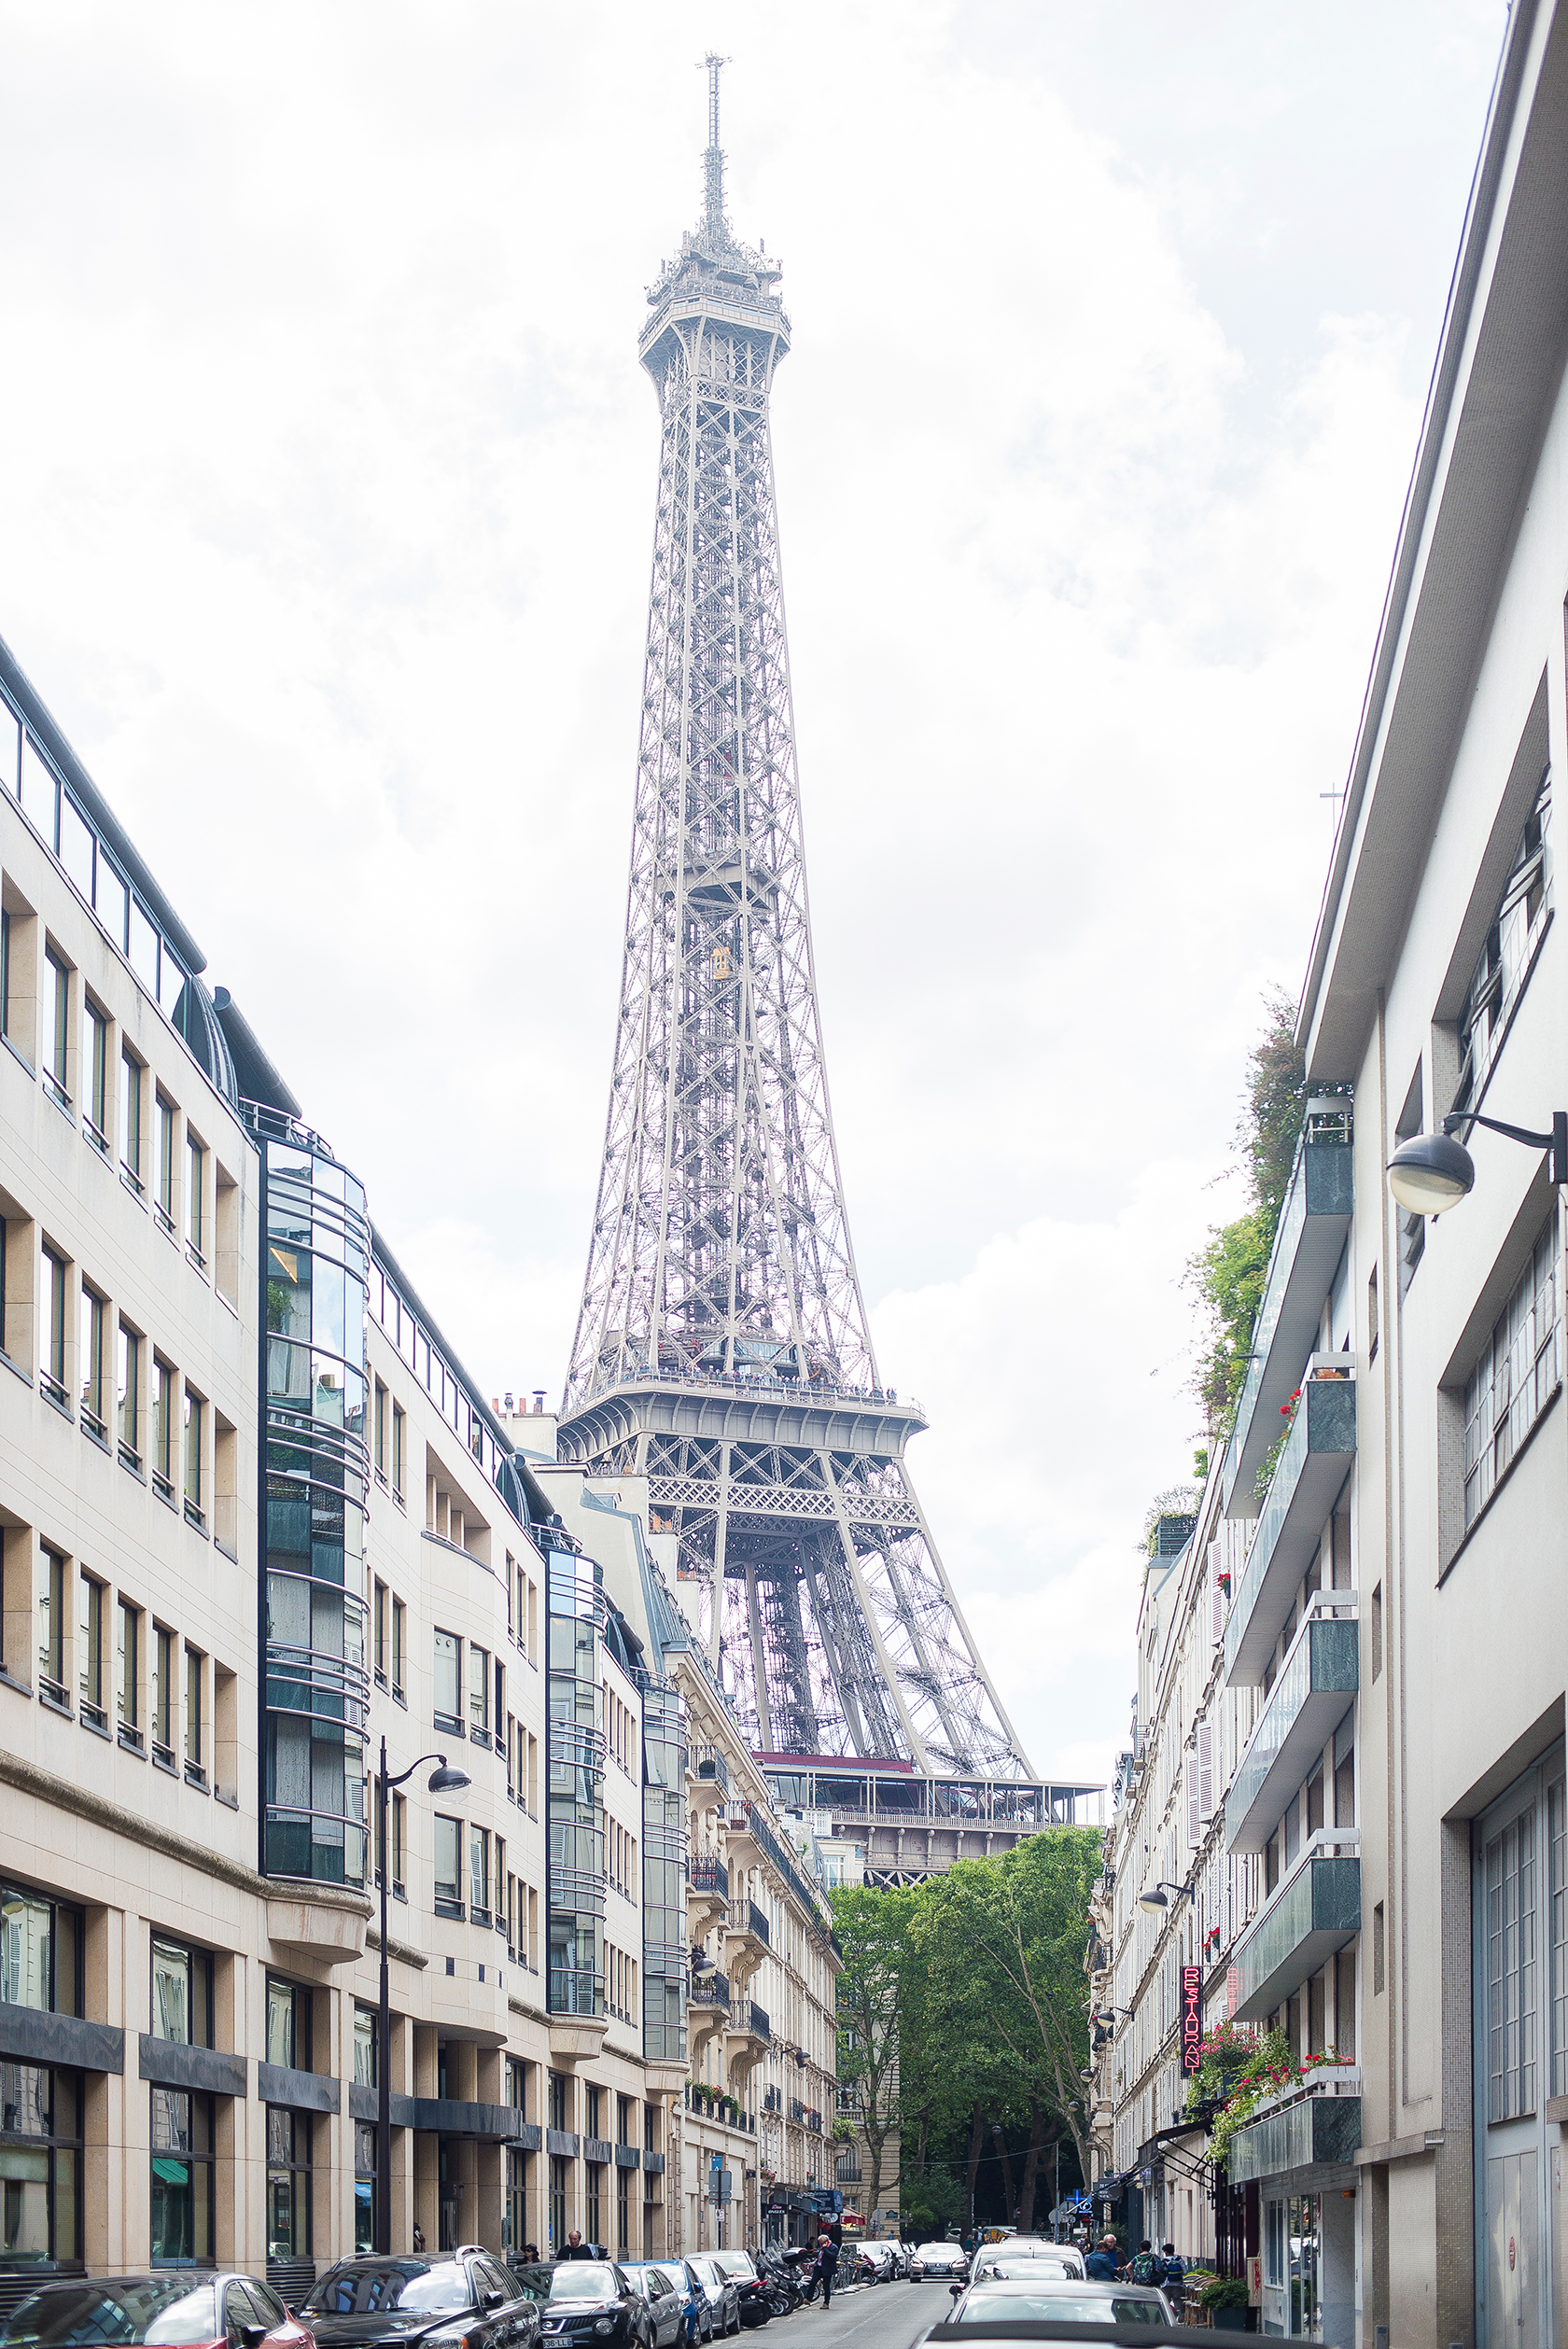 View of the Eiffel Tower along Rue de Monttessuy